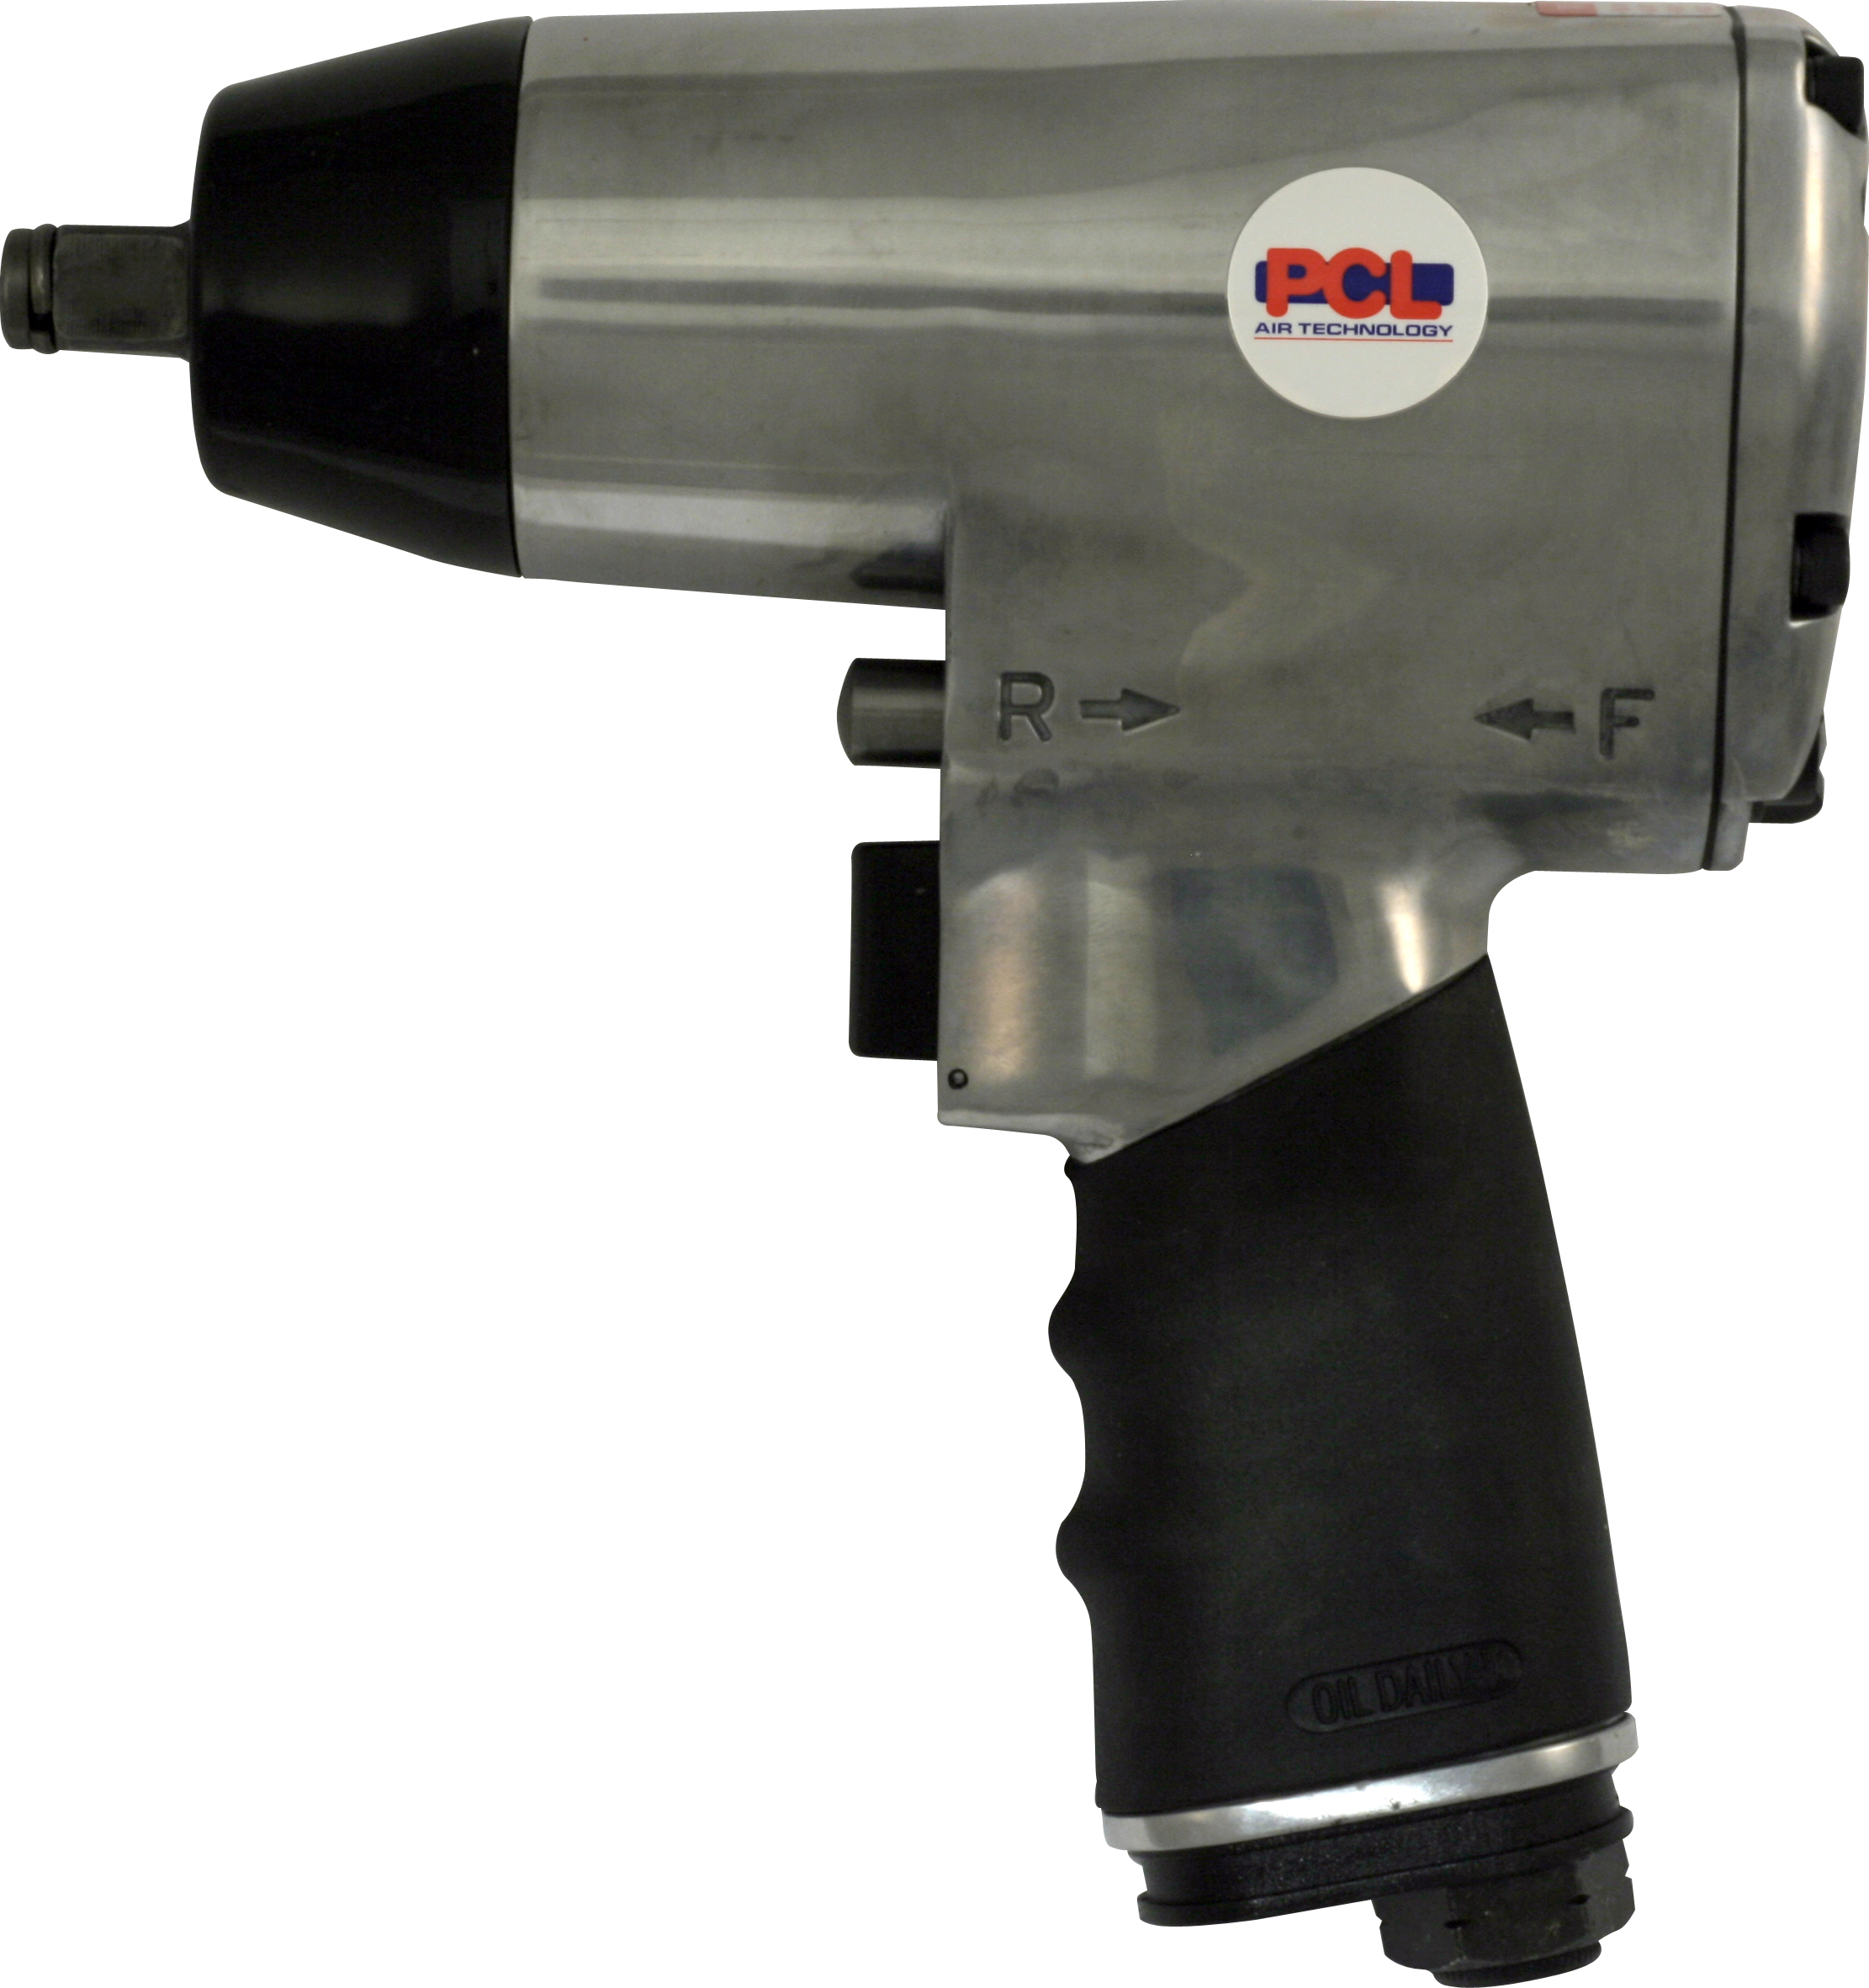 "PCL 1/2"" DRIVE PNEUMATIC DRIVE IMPACT WRENCH- 540NM"